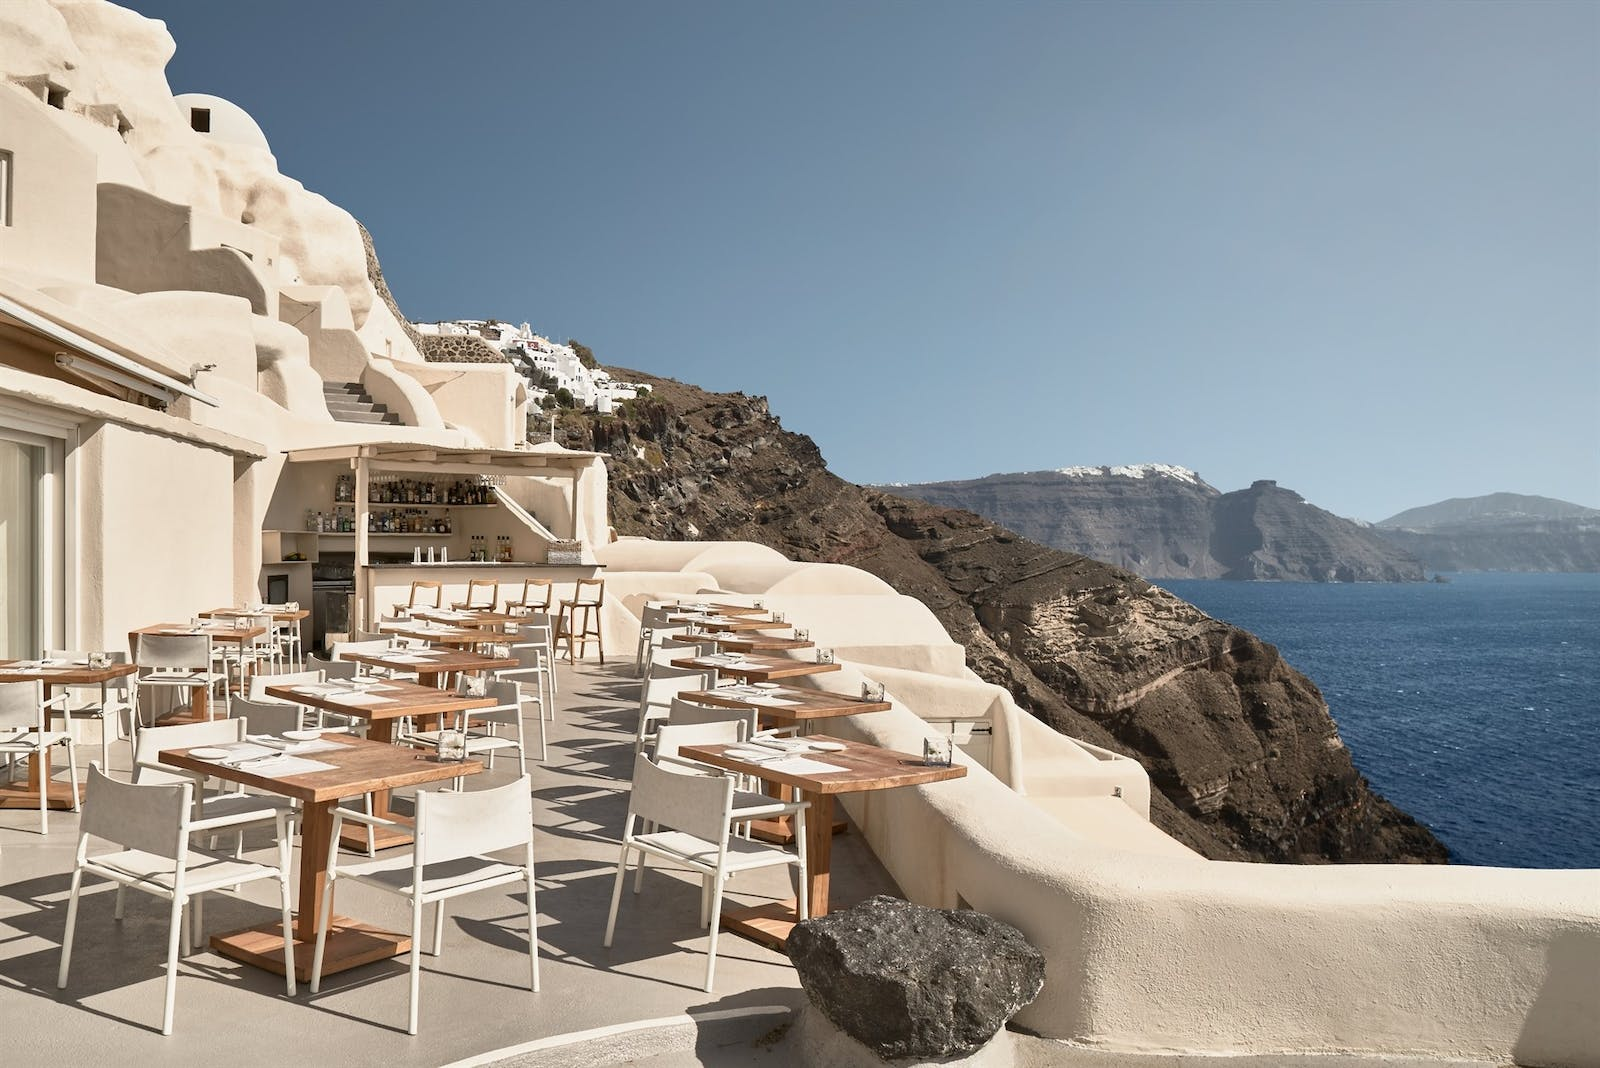 Charisma Restaurant, Mystique, Santorini, Greece